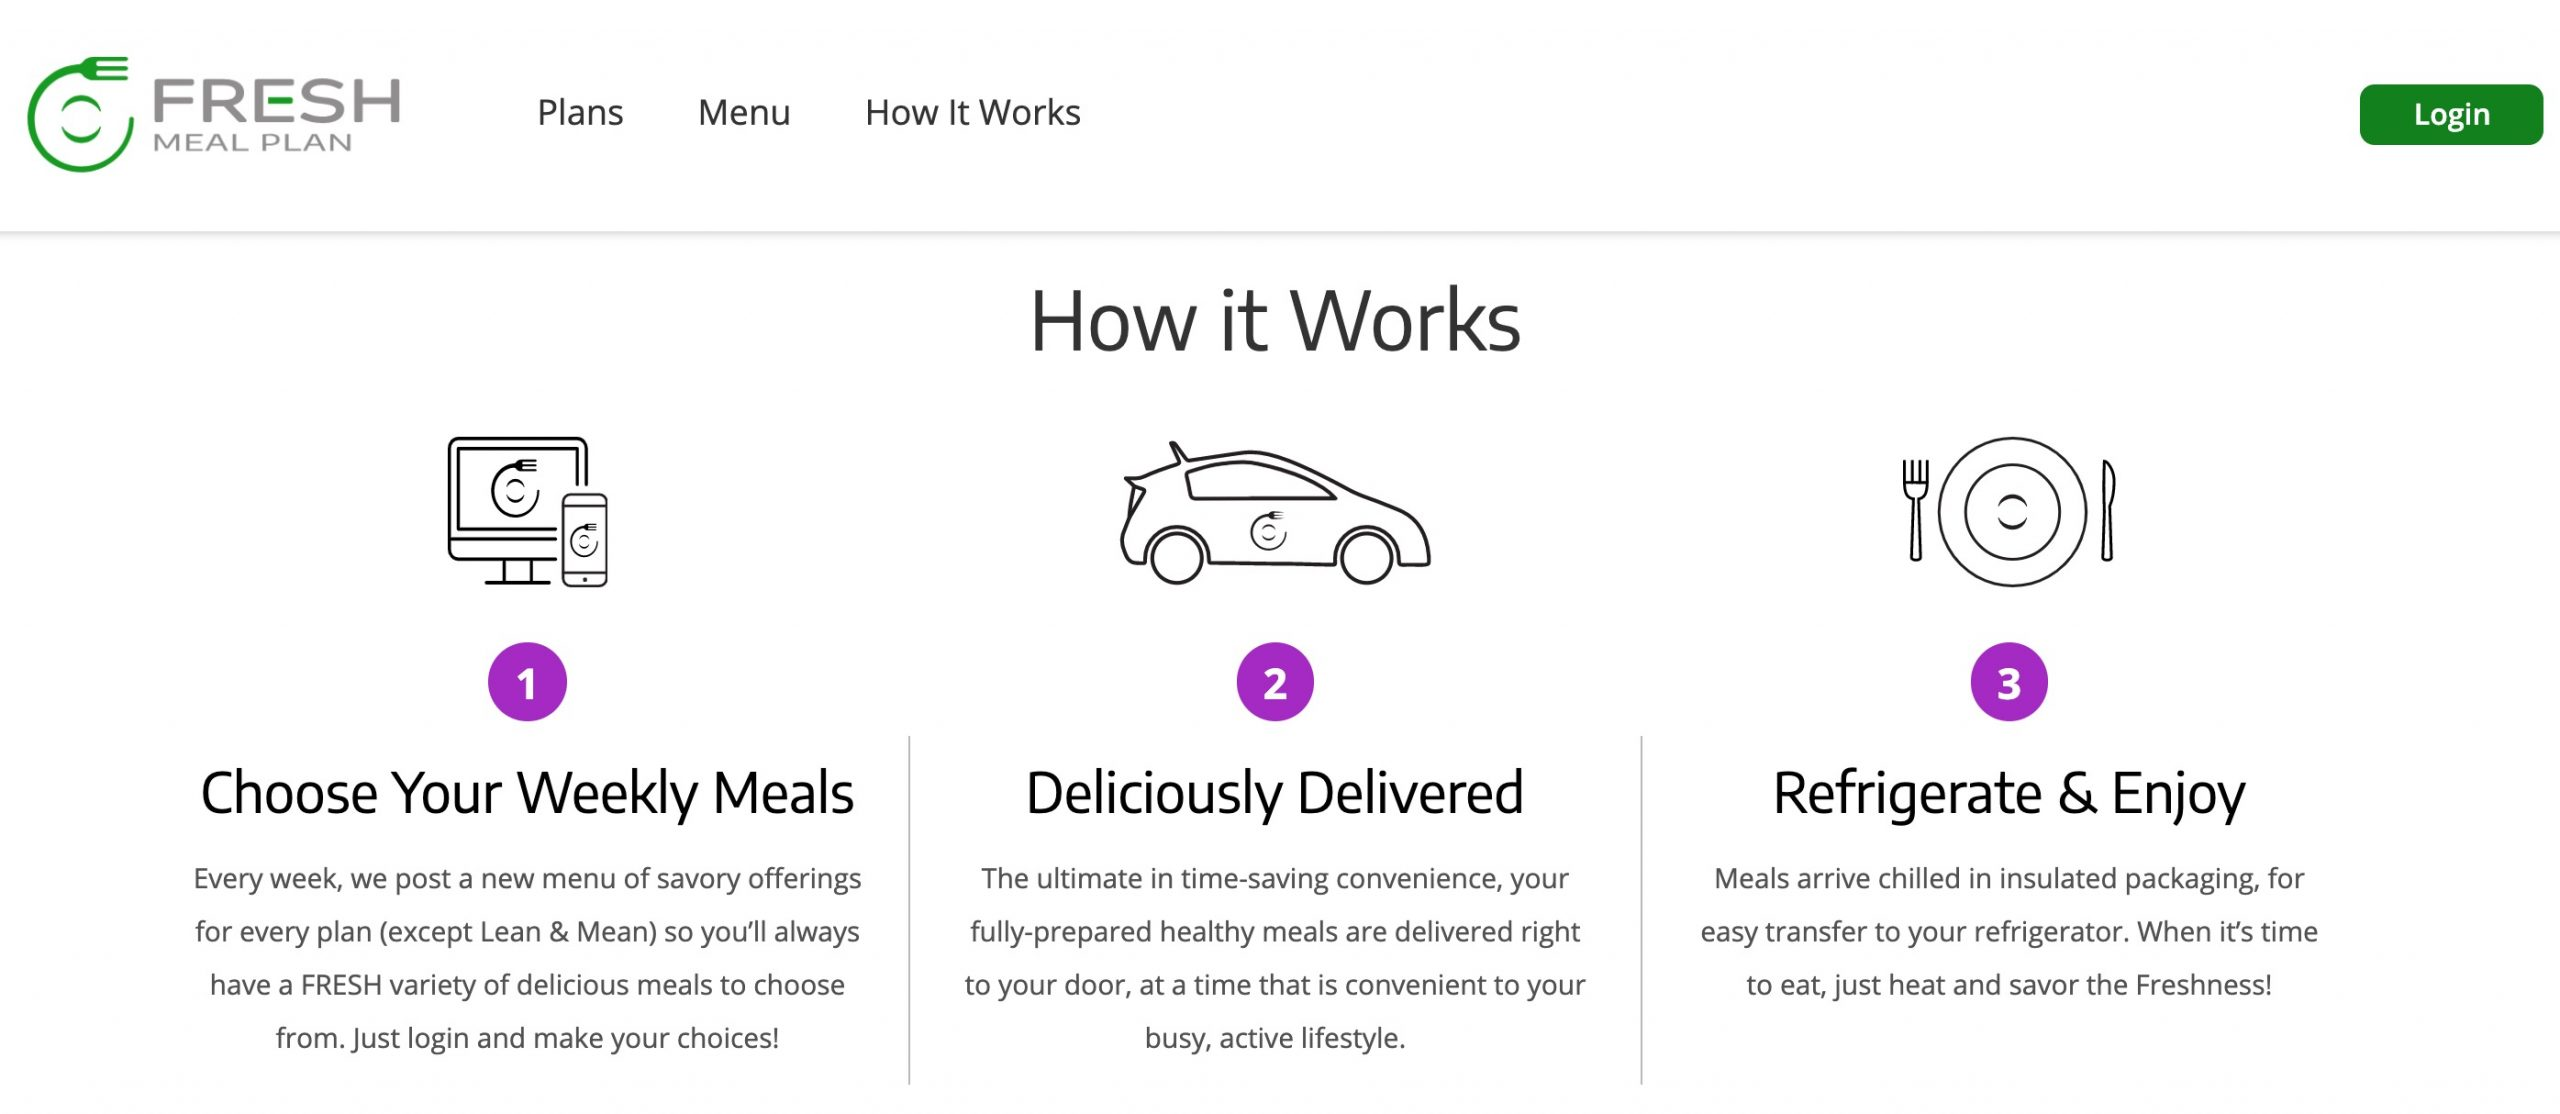 fresh meal plan how it works